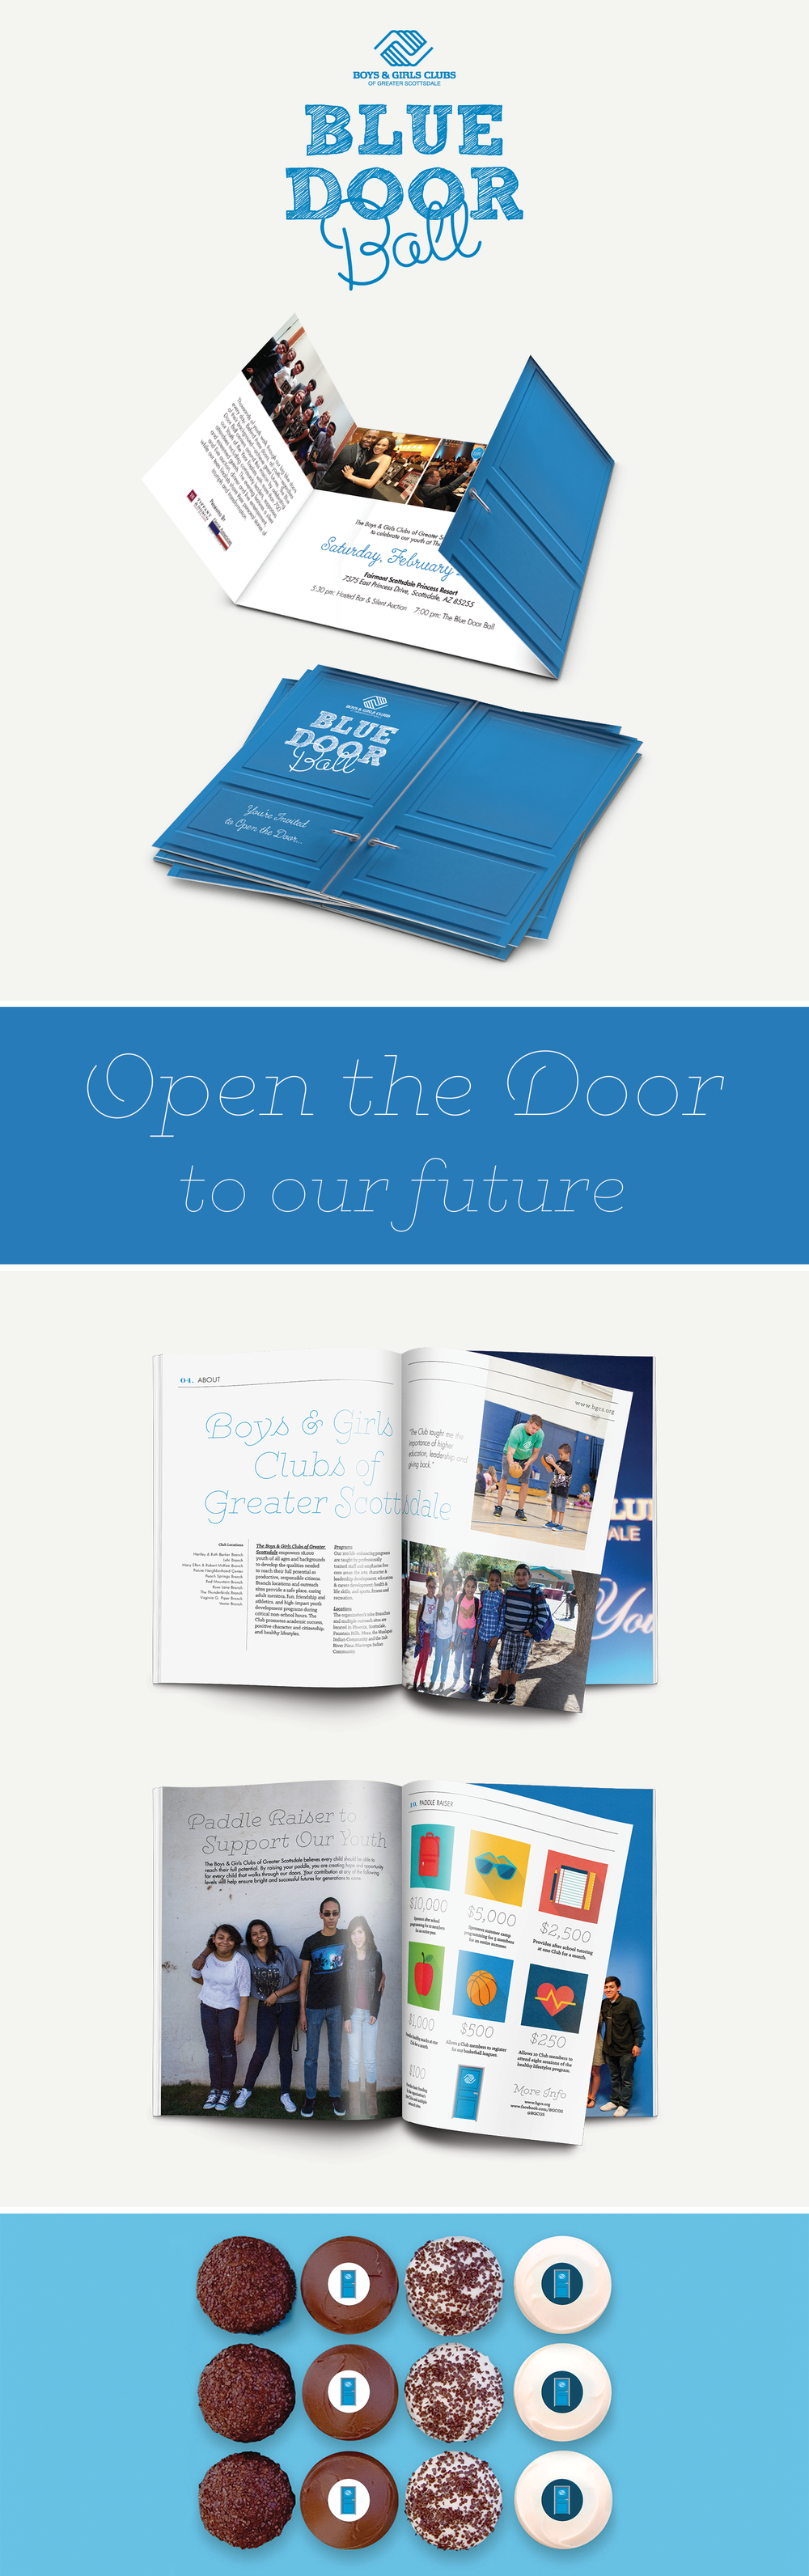 The Blue Door Ball event branding by Pace Creative Design Studio